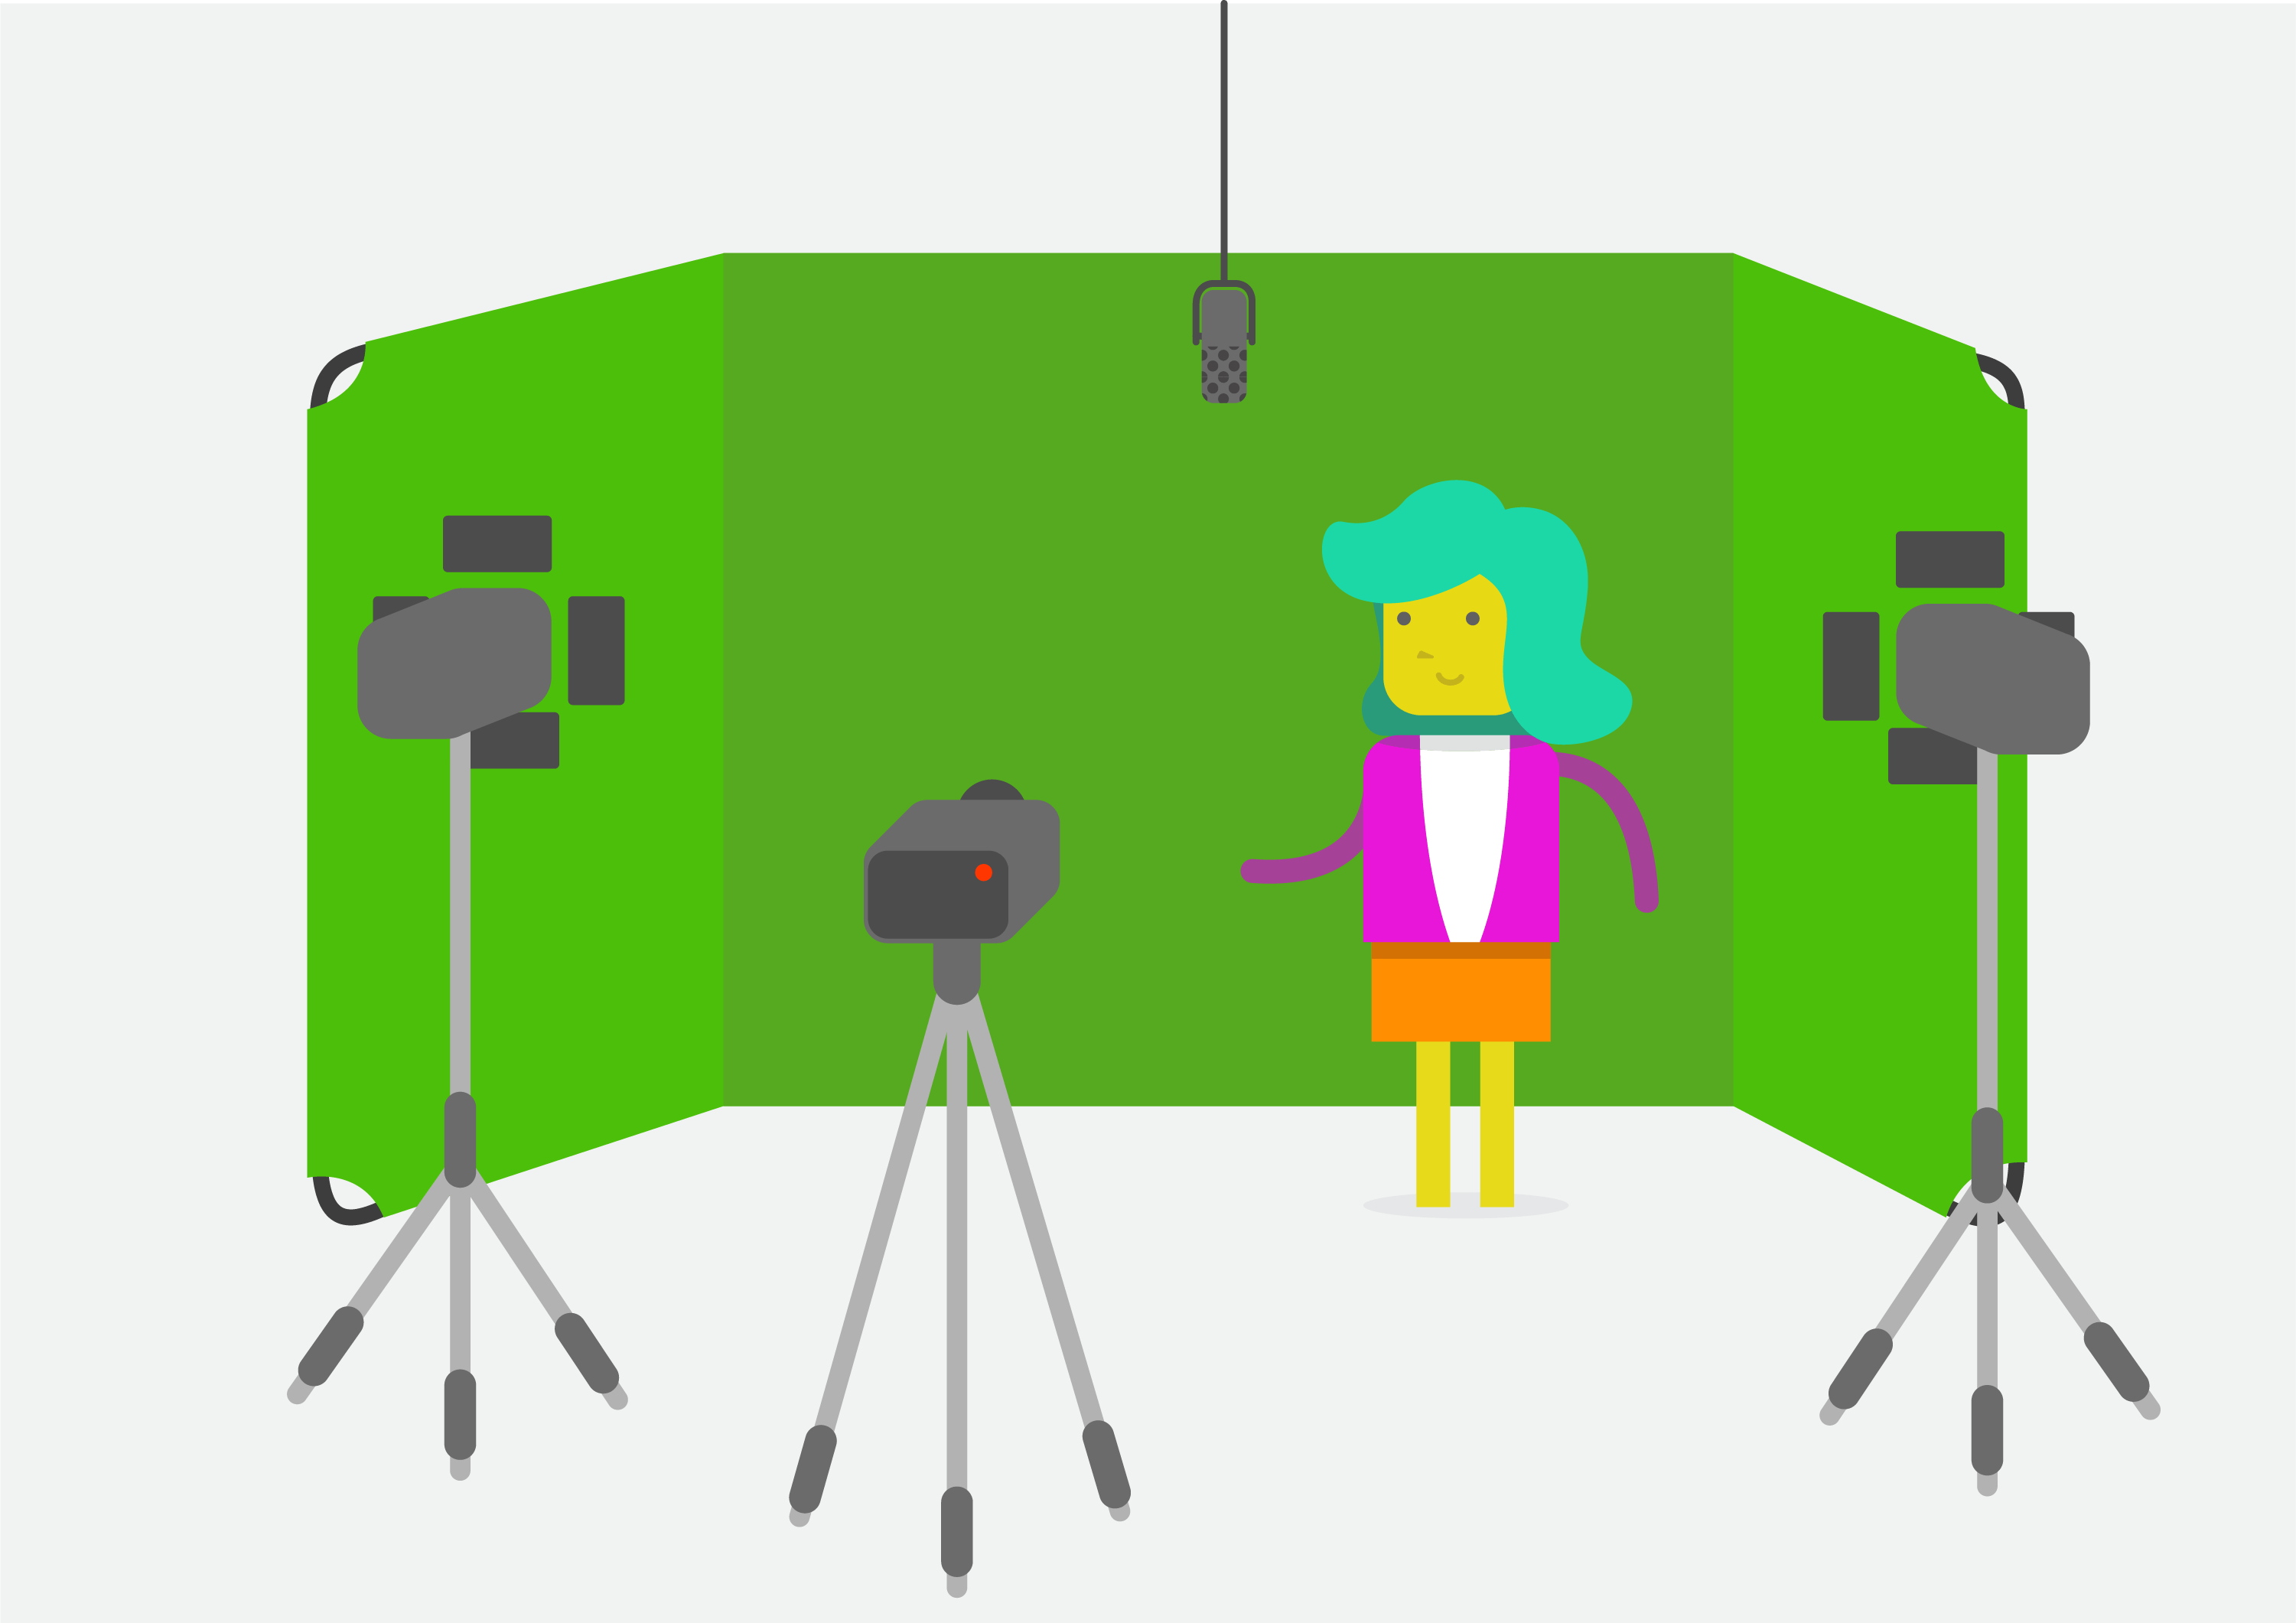 Onlea---Green-Screen